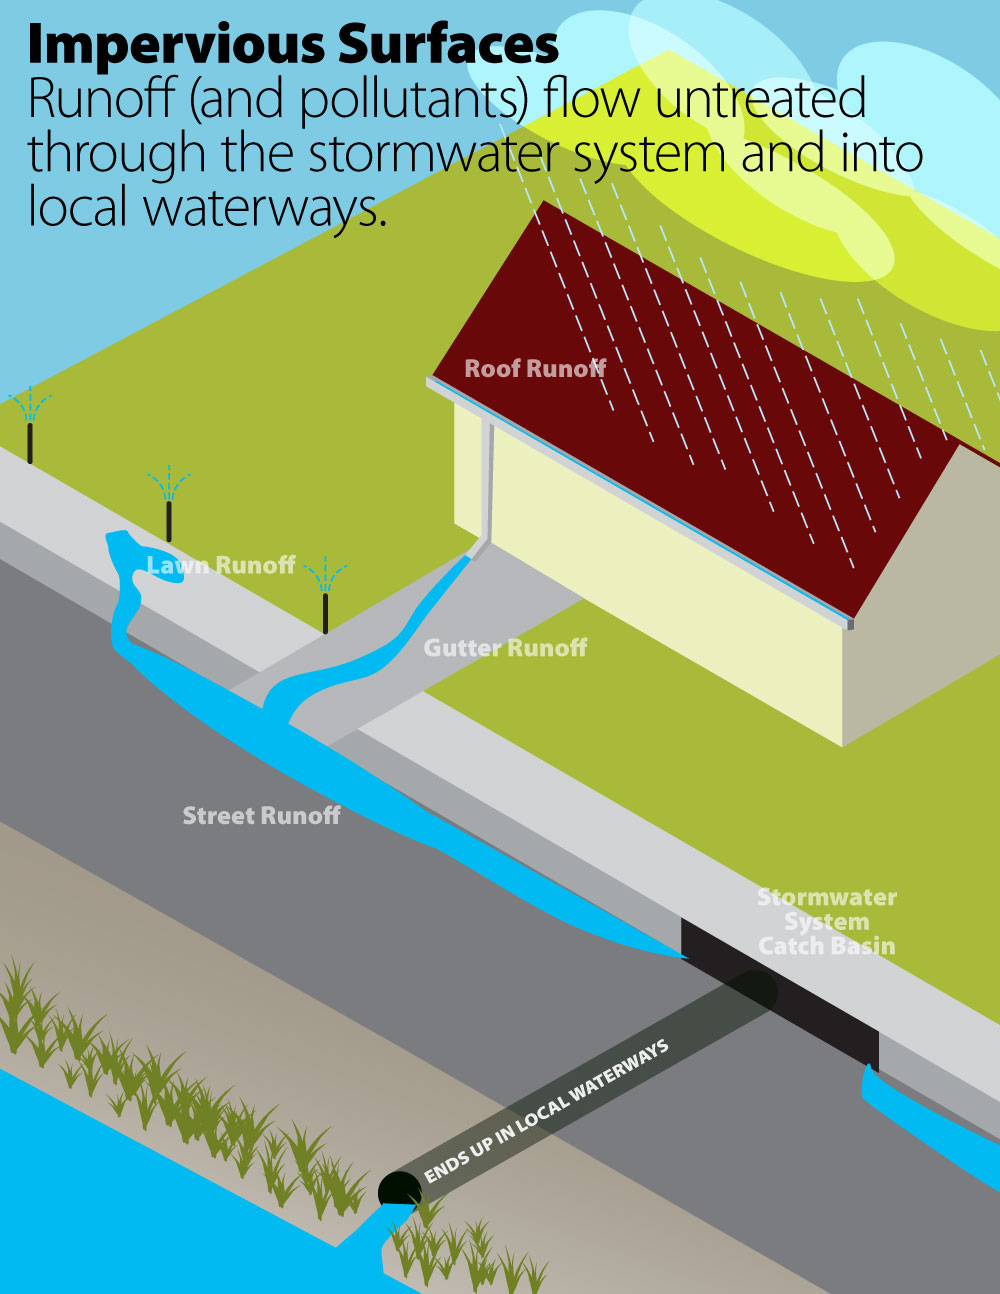 The analyze tool is designed for use on desktop computers and tablets in landscape mode. Stormwater